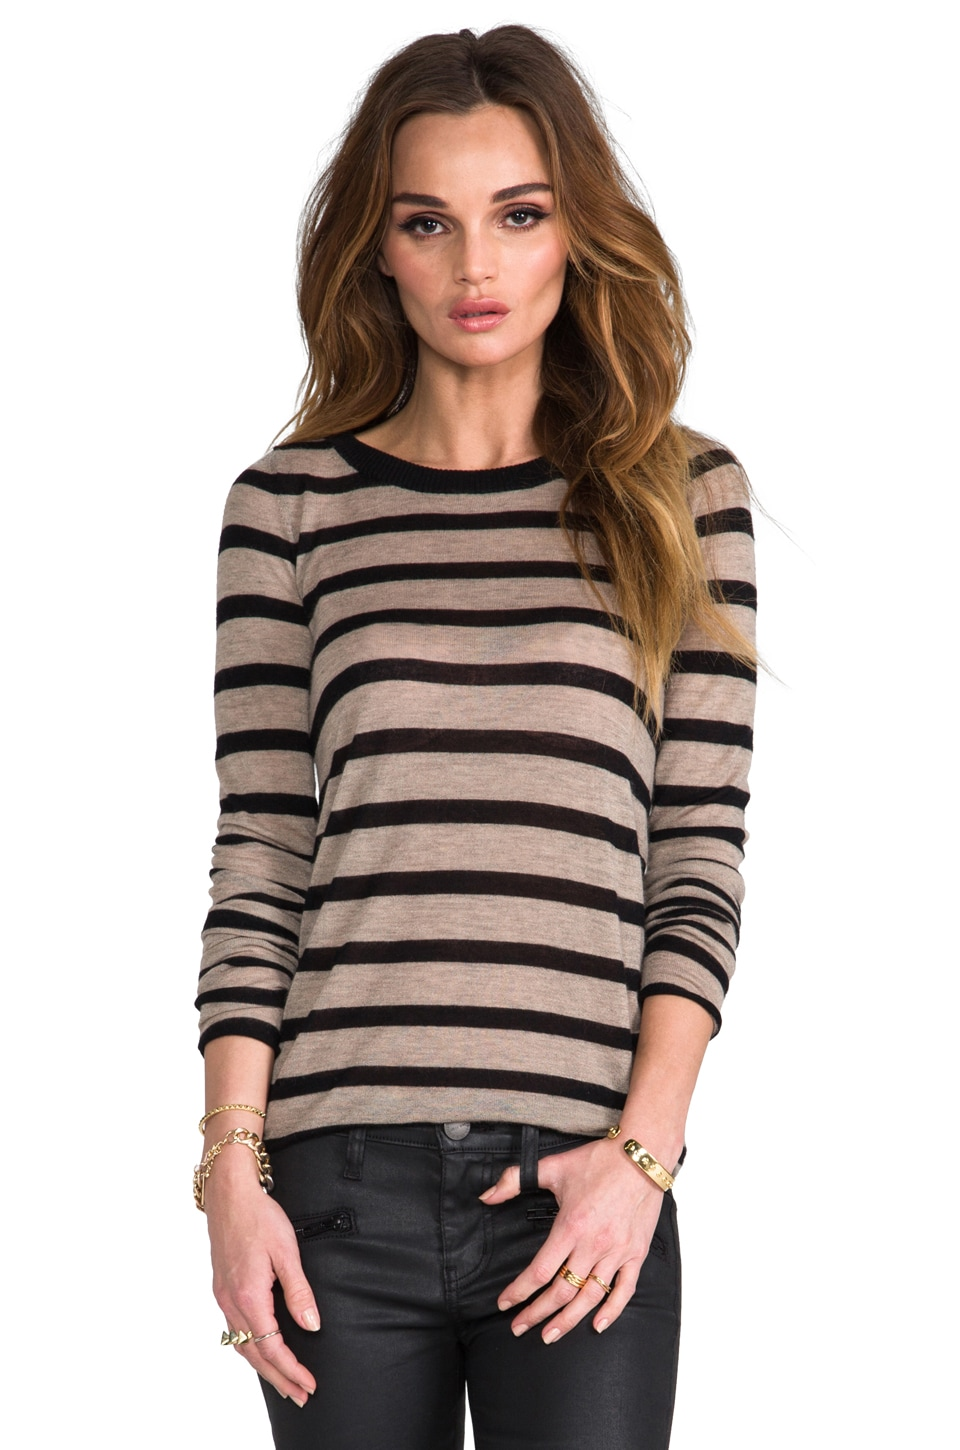 Enza Costa Cashmere Stripe Bold Crew in Camel/Black